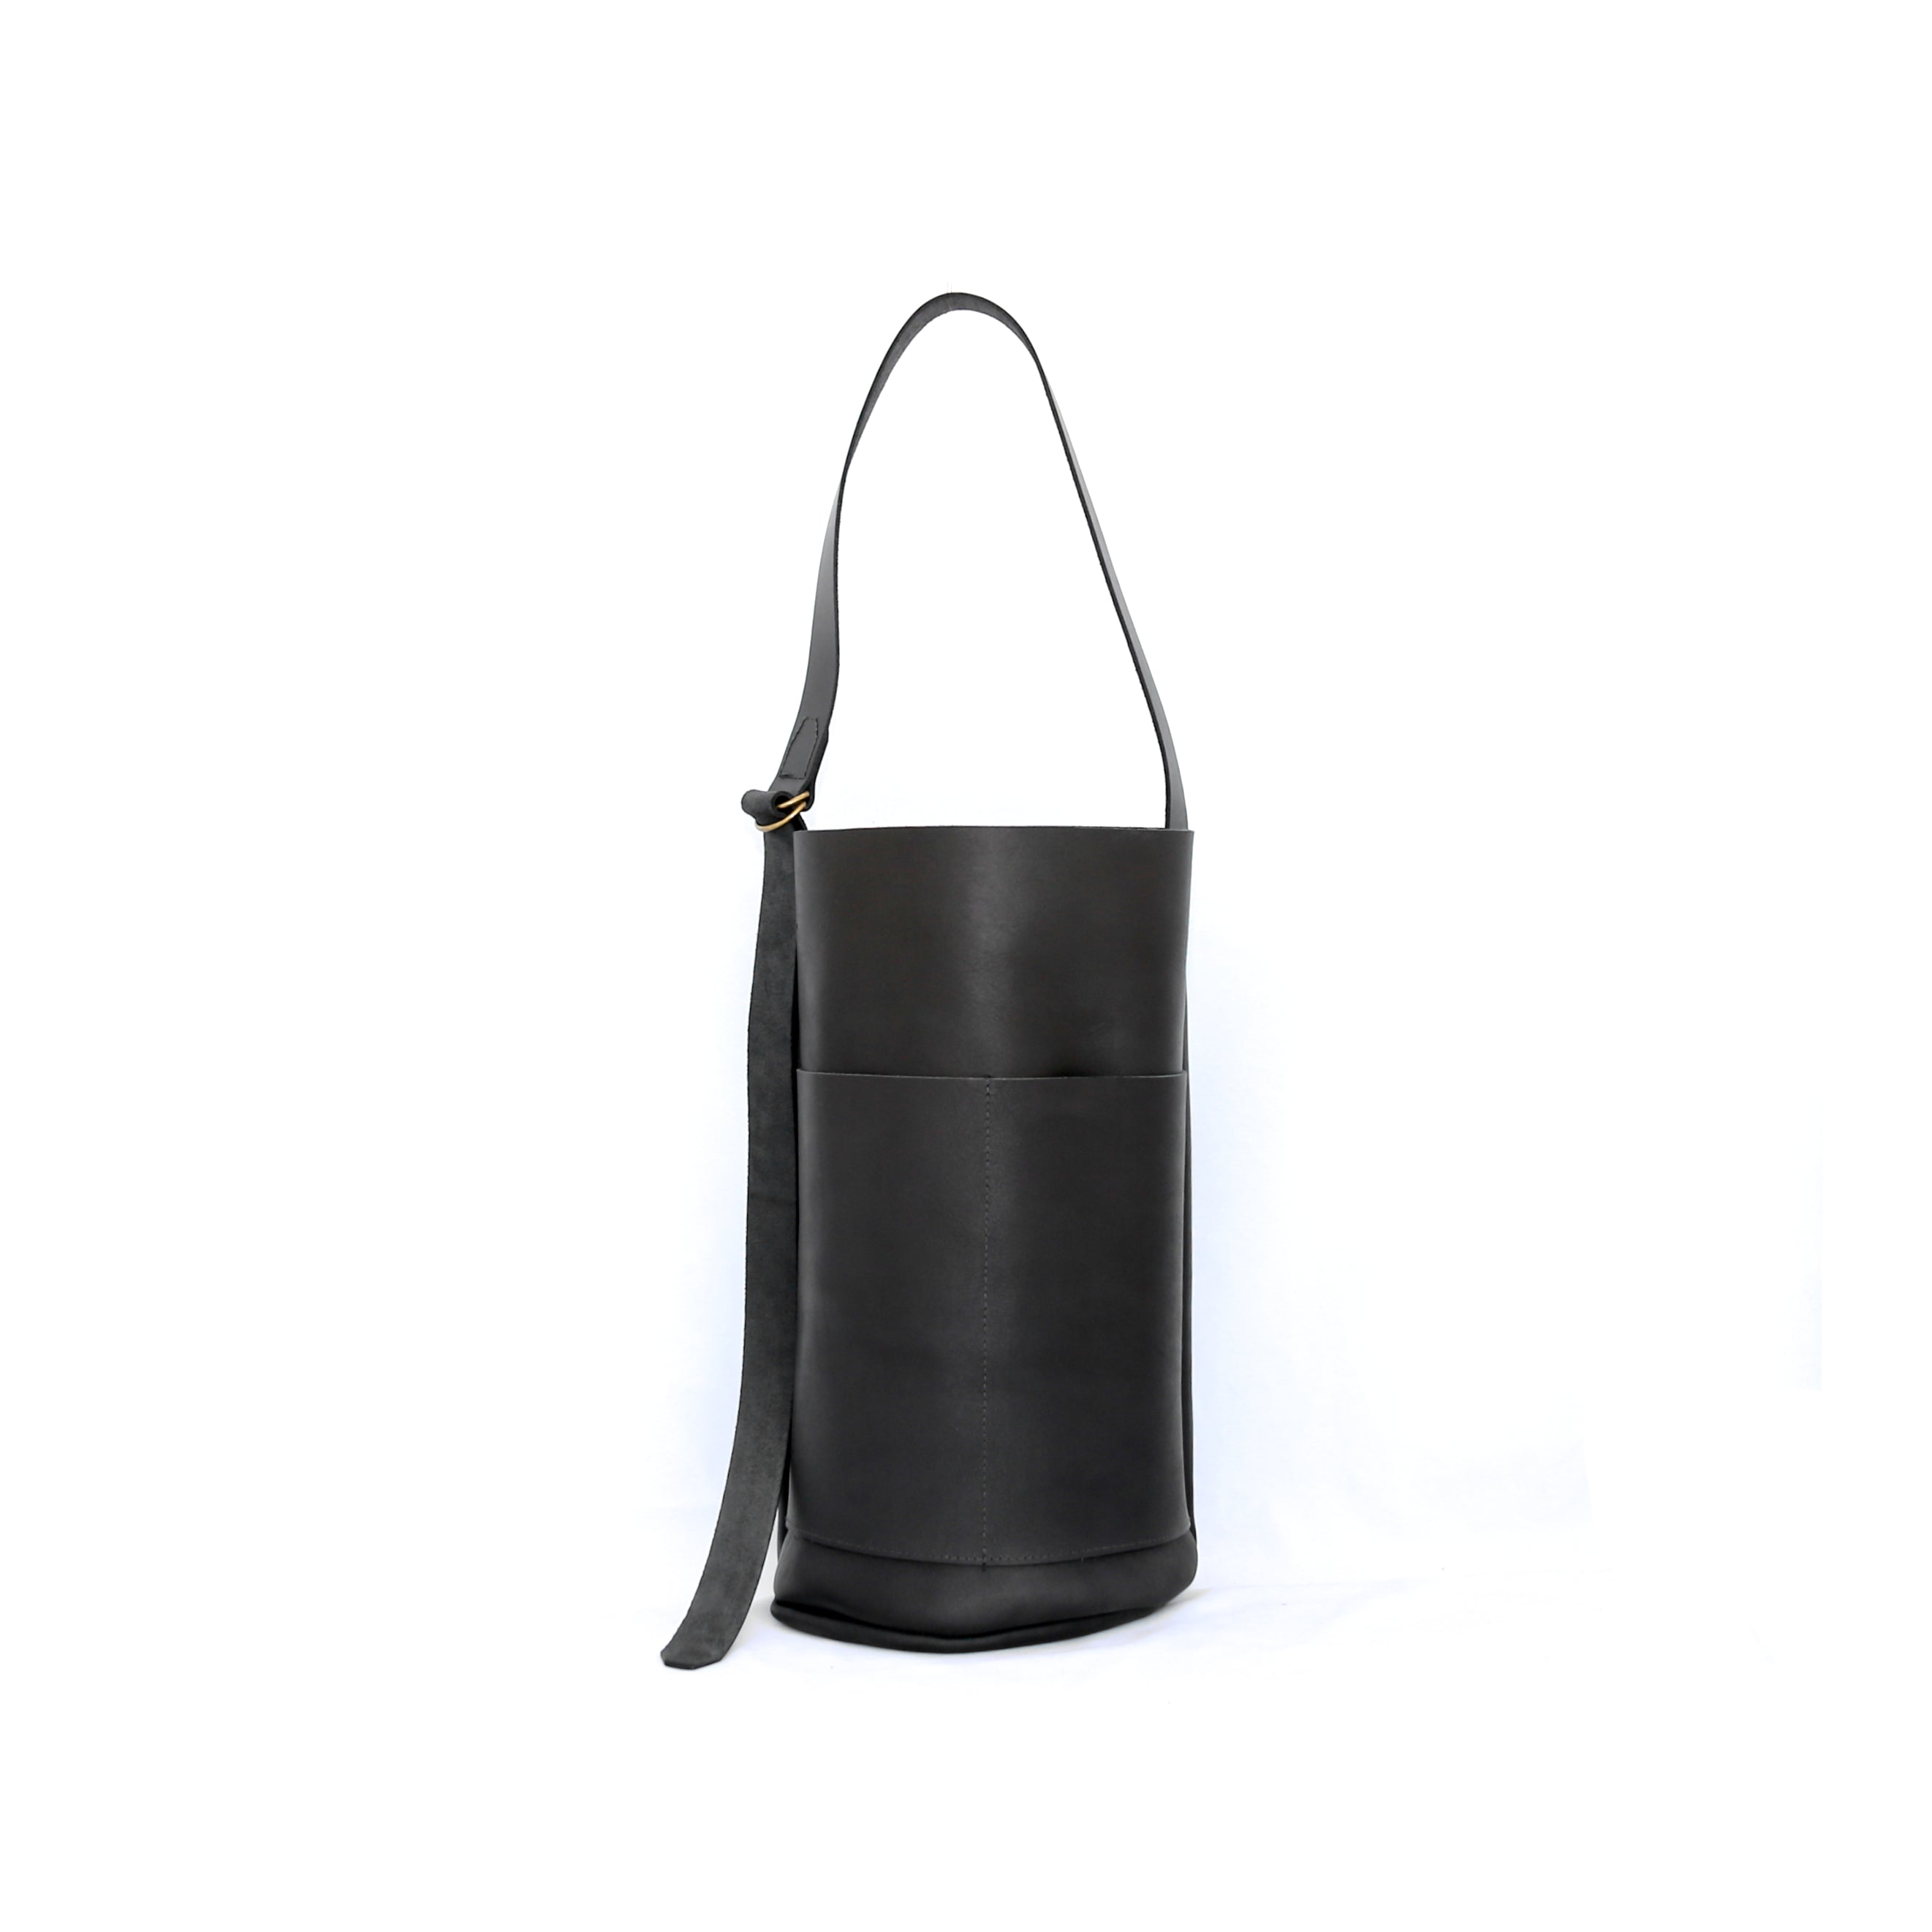 Femme Bucket In Matte Black Leather - handcrafted by Market Canvas Leather in Tofino, BC, Canada